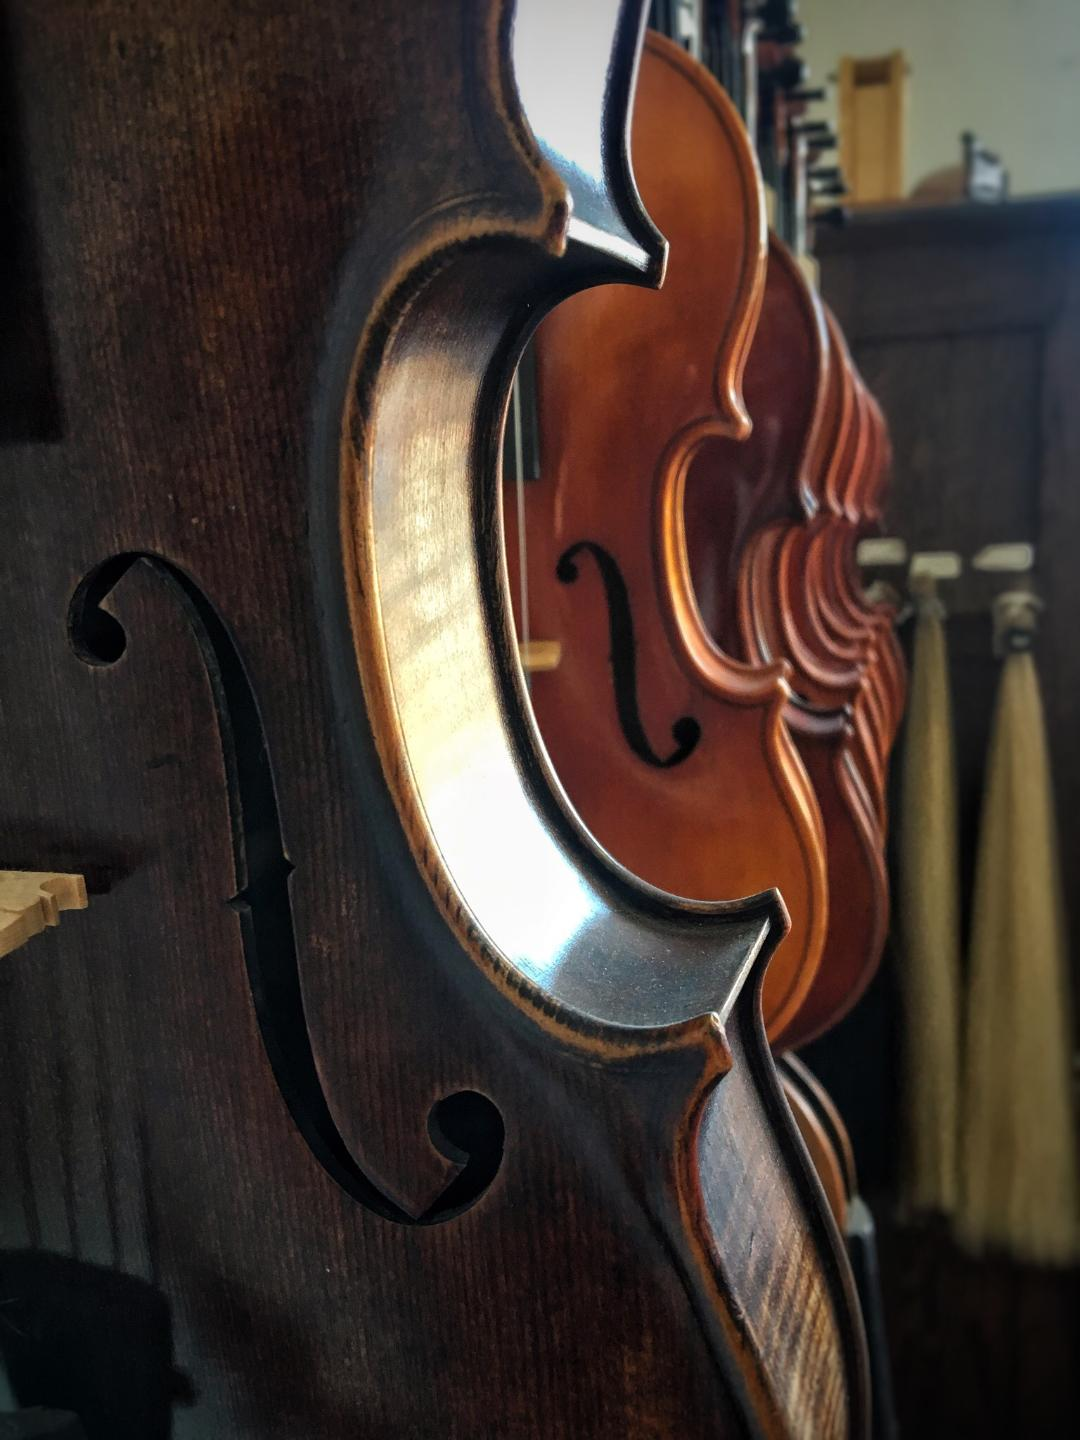 VIOLAS - We carry instruments from makers such as Andreas Eastman, Johann Kessler, Ivan Dunov, Rudolph Doetsch, Robert Dolling, Werner Barth, Eugene Holtier, Camillo Callegari, Wunderlick, Sean Peak, Frederich Wyss, and Jay Haide.